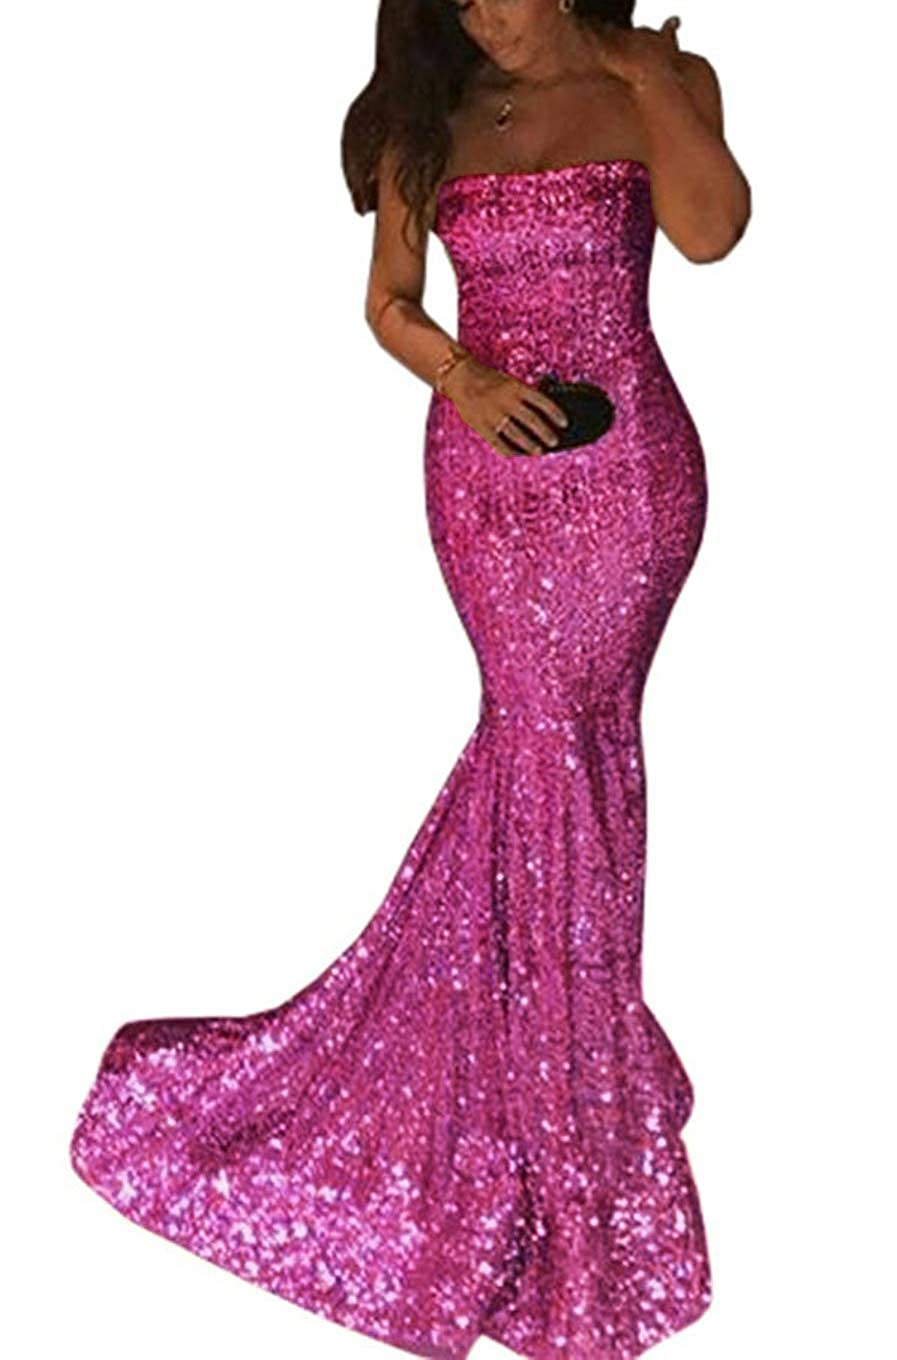 Hot Pink ZLQQ Sequins Mermaid Prom Bridesmaid Dress Strapless Long Evening Party Dress for Women